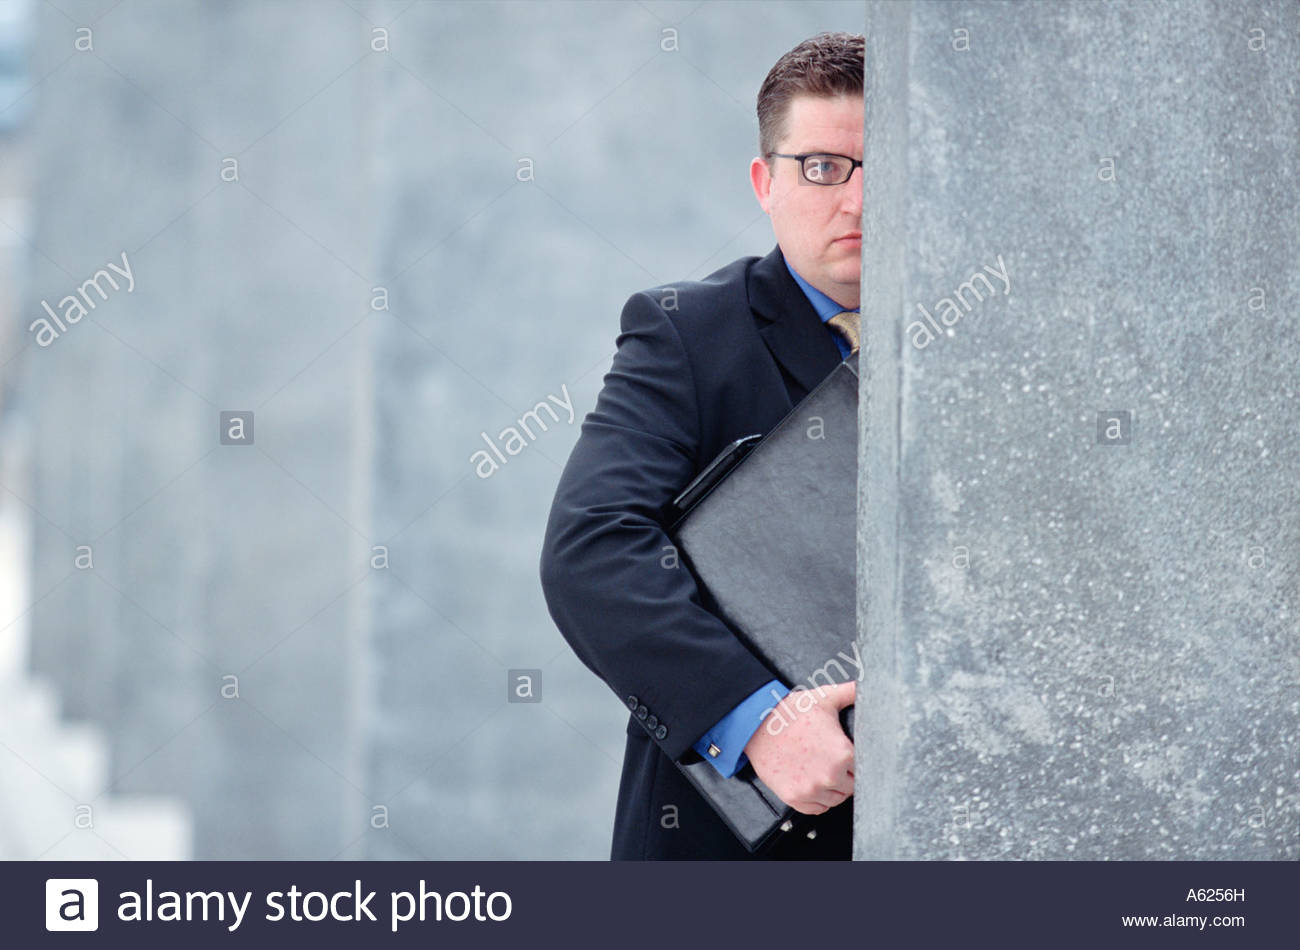 conceptual image of businessman half concealed by wall holding a briefcase  to his chest